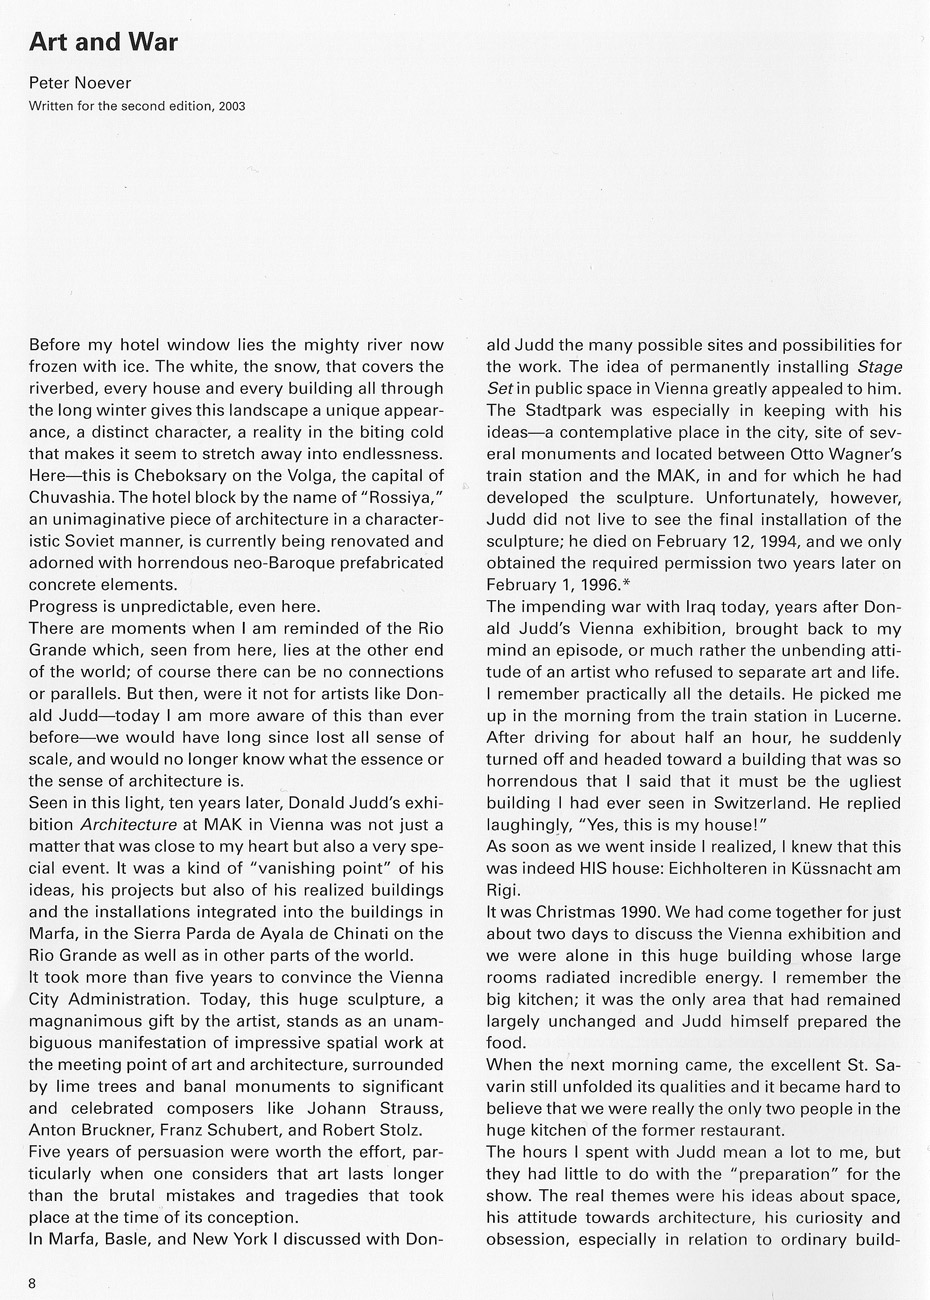 gulf war essay gulf war essay highway of death s photo essay on emaze noever design again in focus donald judd <p>peter noever ldquoart and warrdquo in i oil fires gulf war